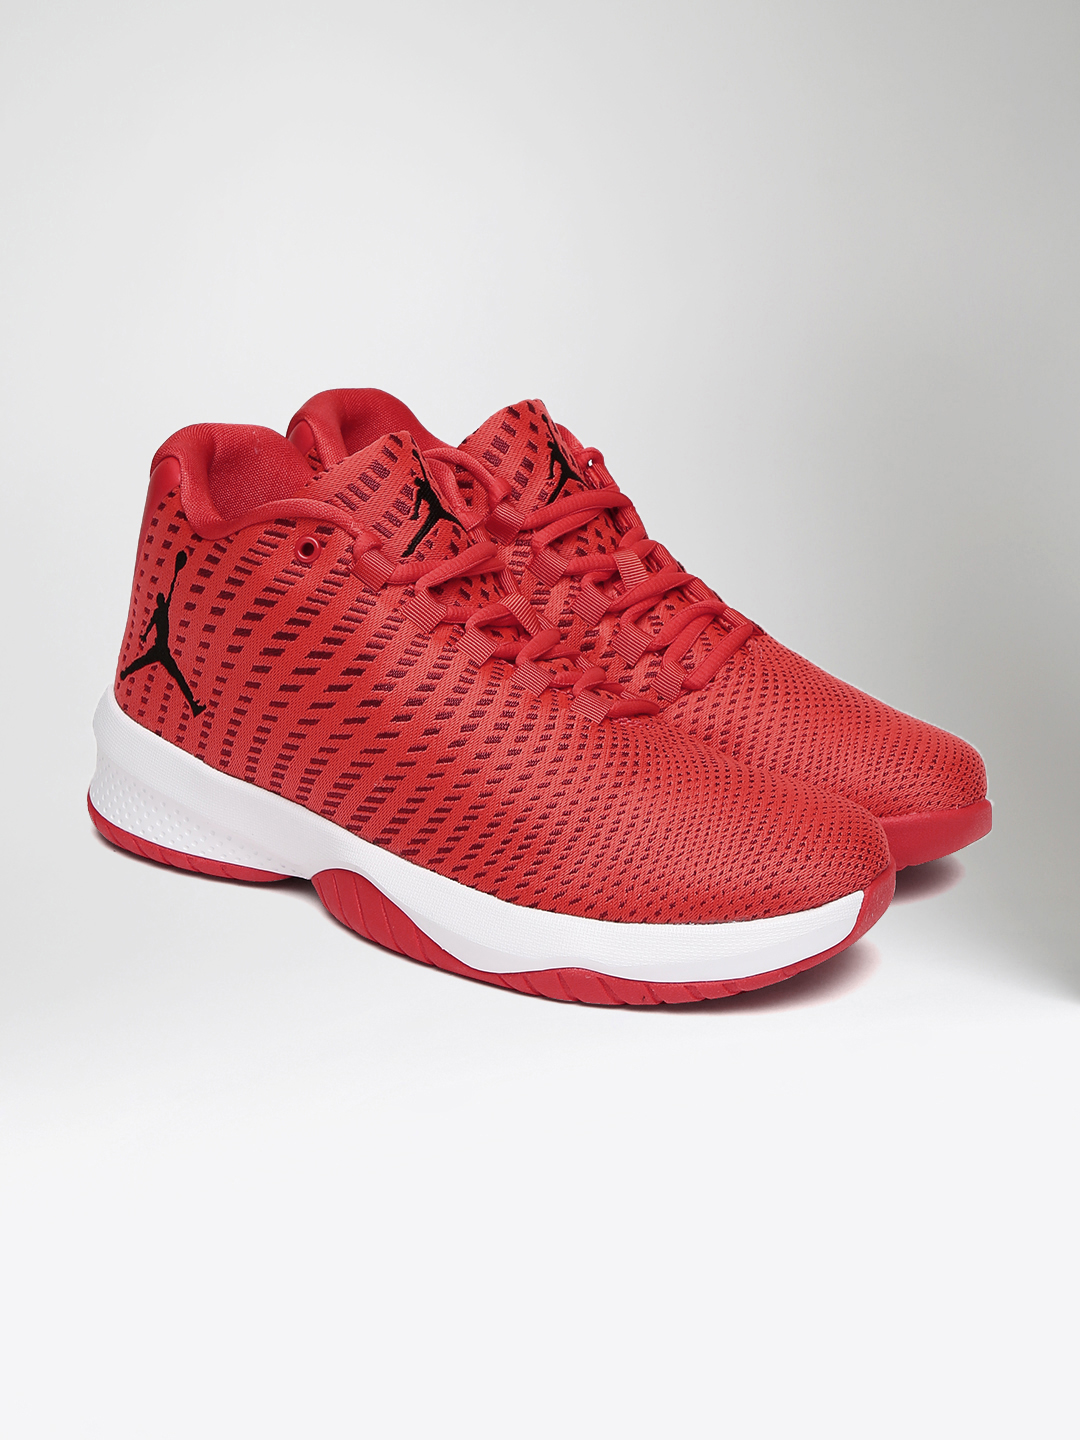 NIKE Men Red Jordan B. Fly Basketball Shoes image 1